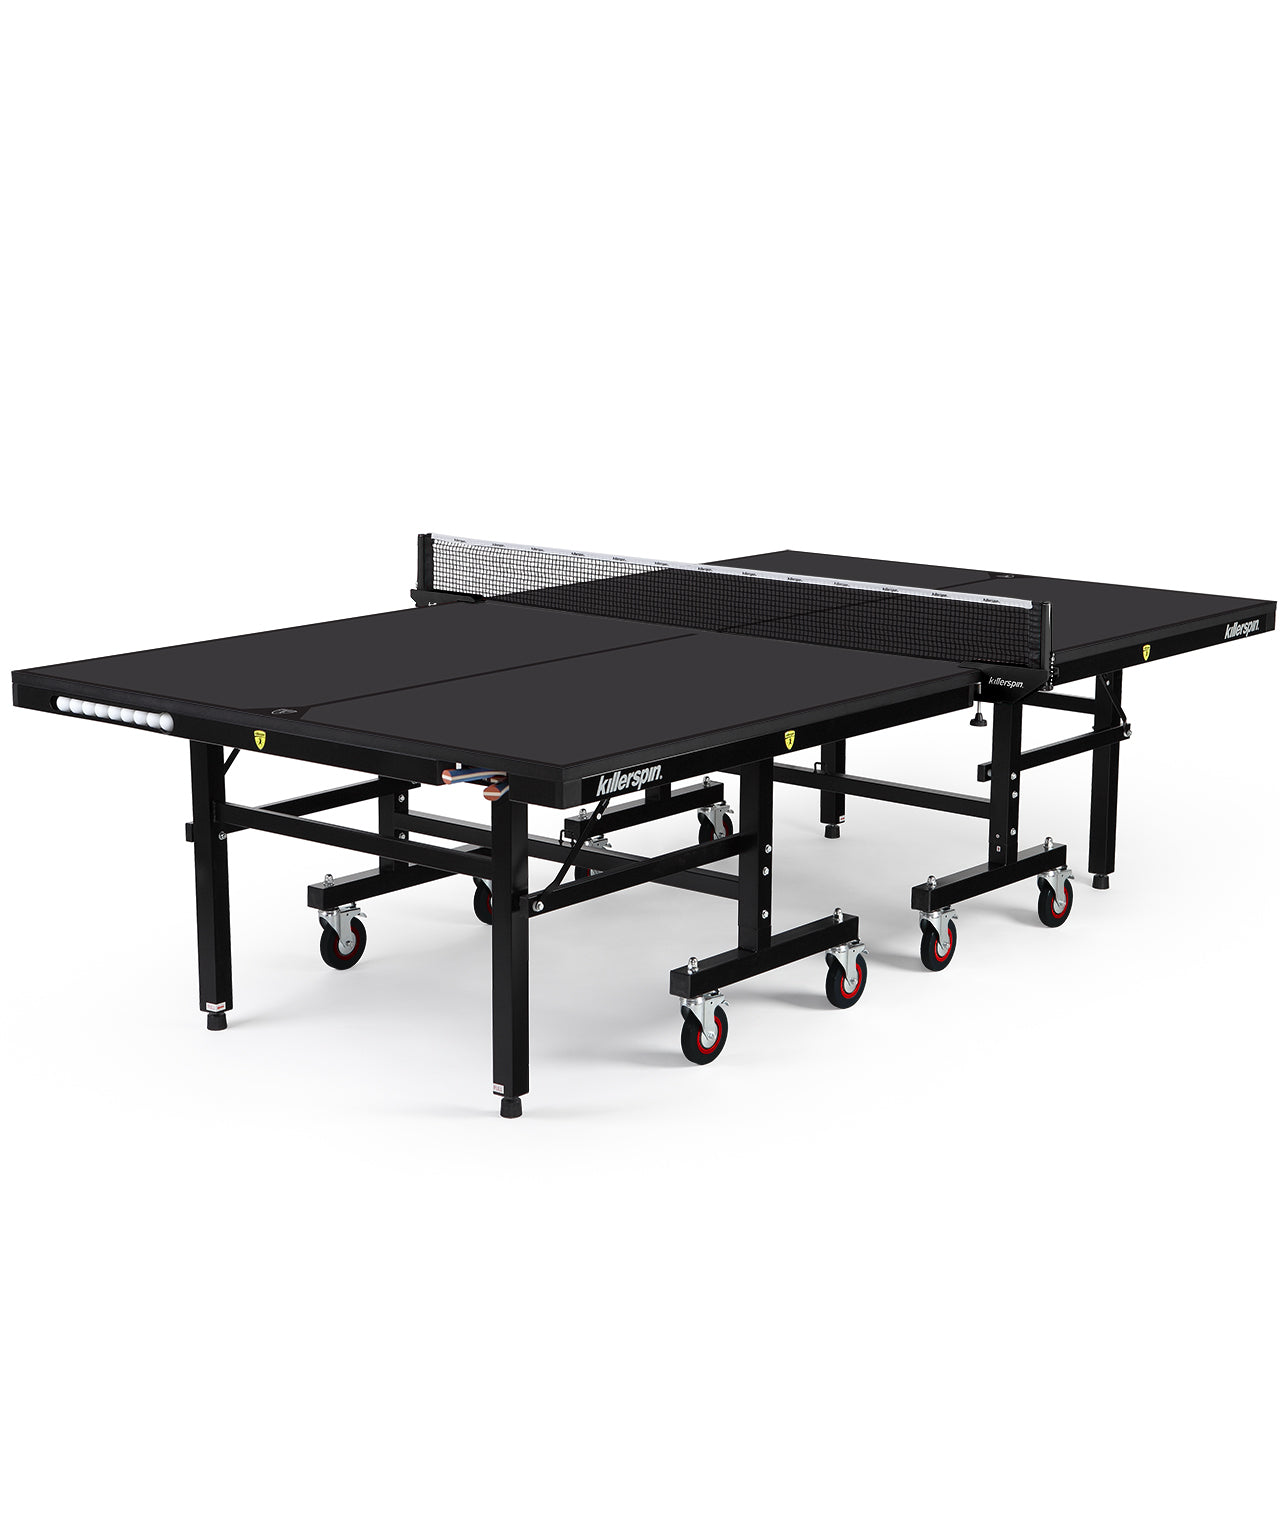 Killerspin MyT Ping Pong Black Table MyT10 Black Pocket